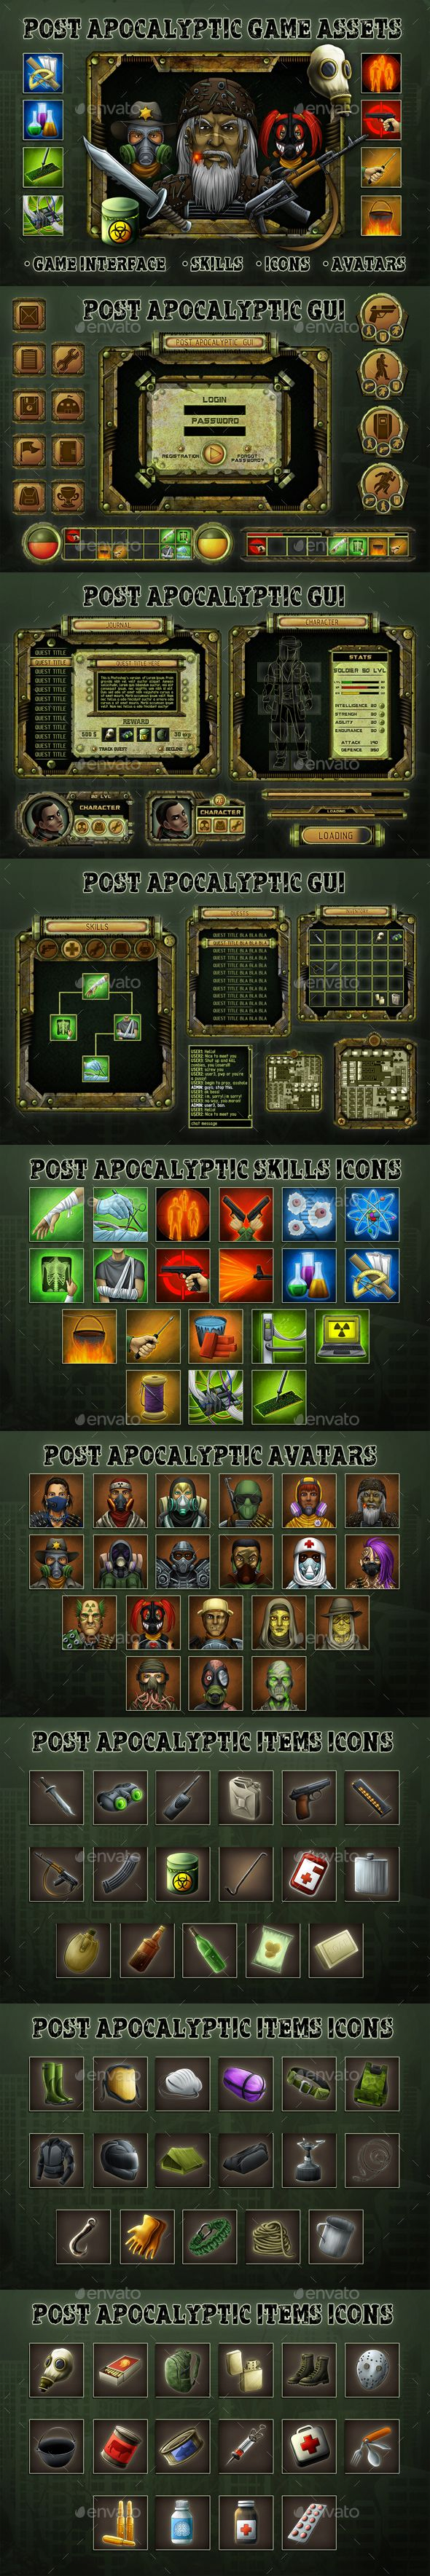 Post Apocalyptic Game Assets | Fonts-logos-icons | Game